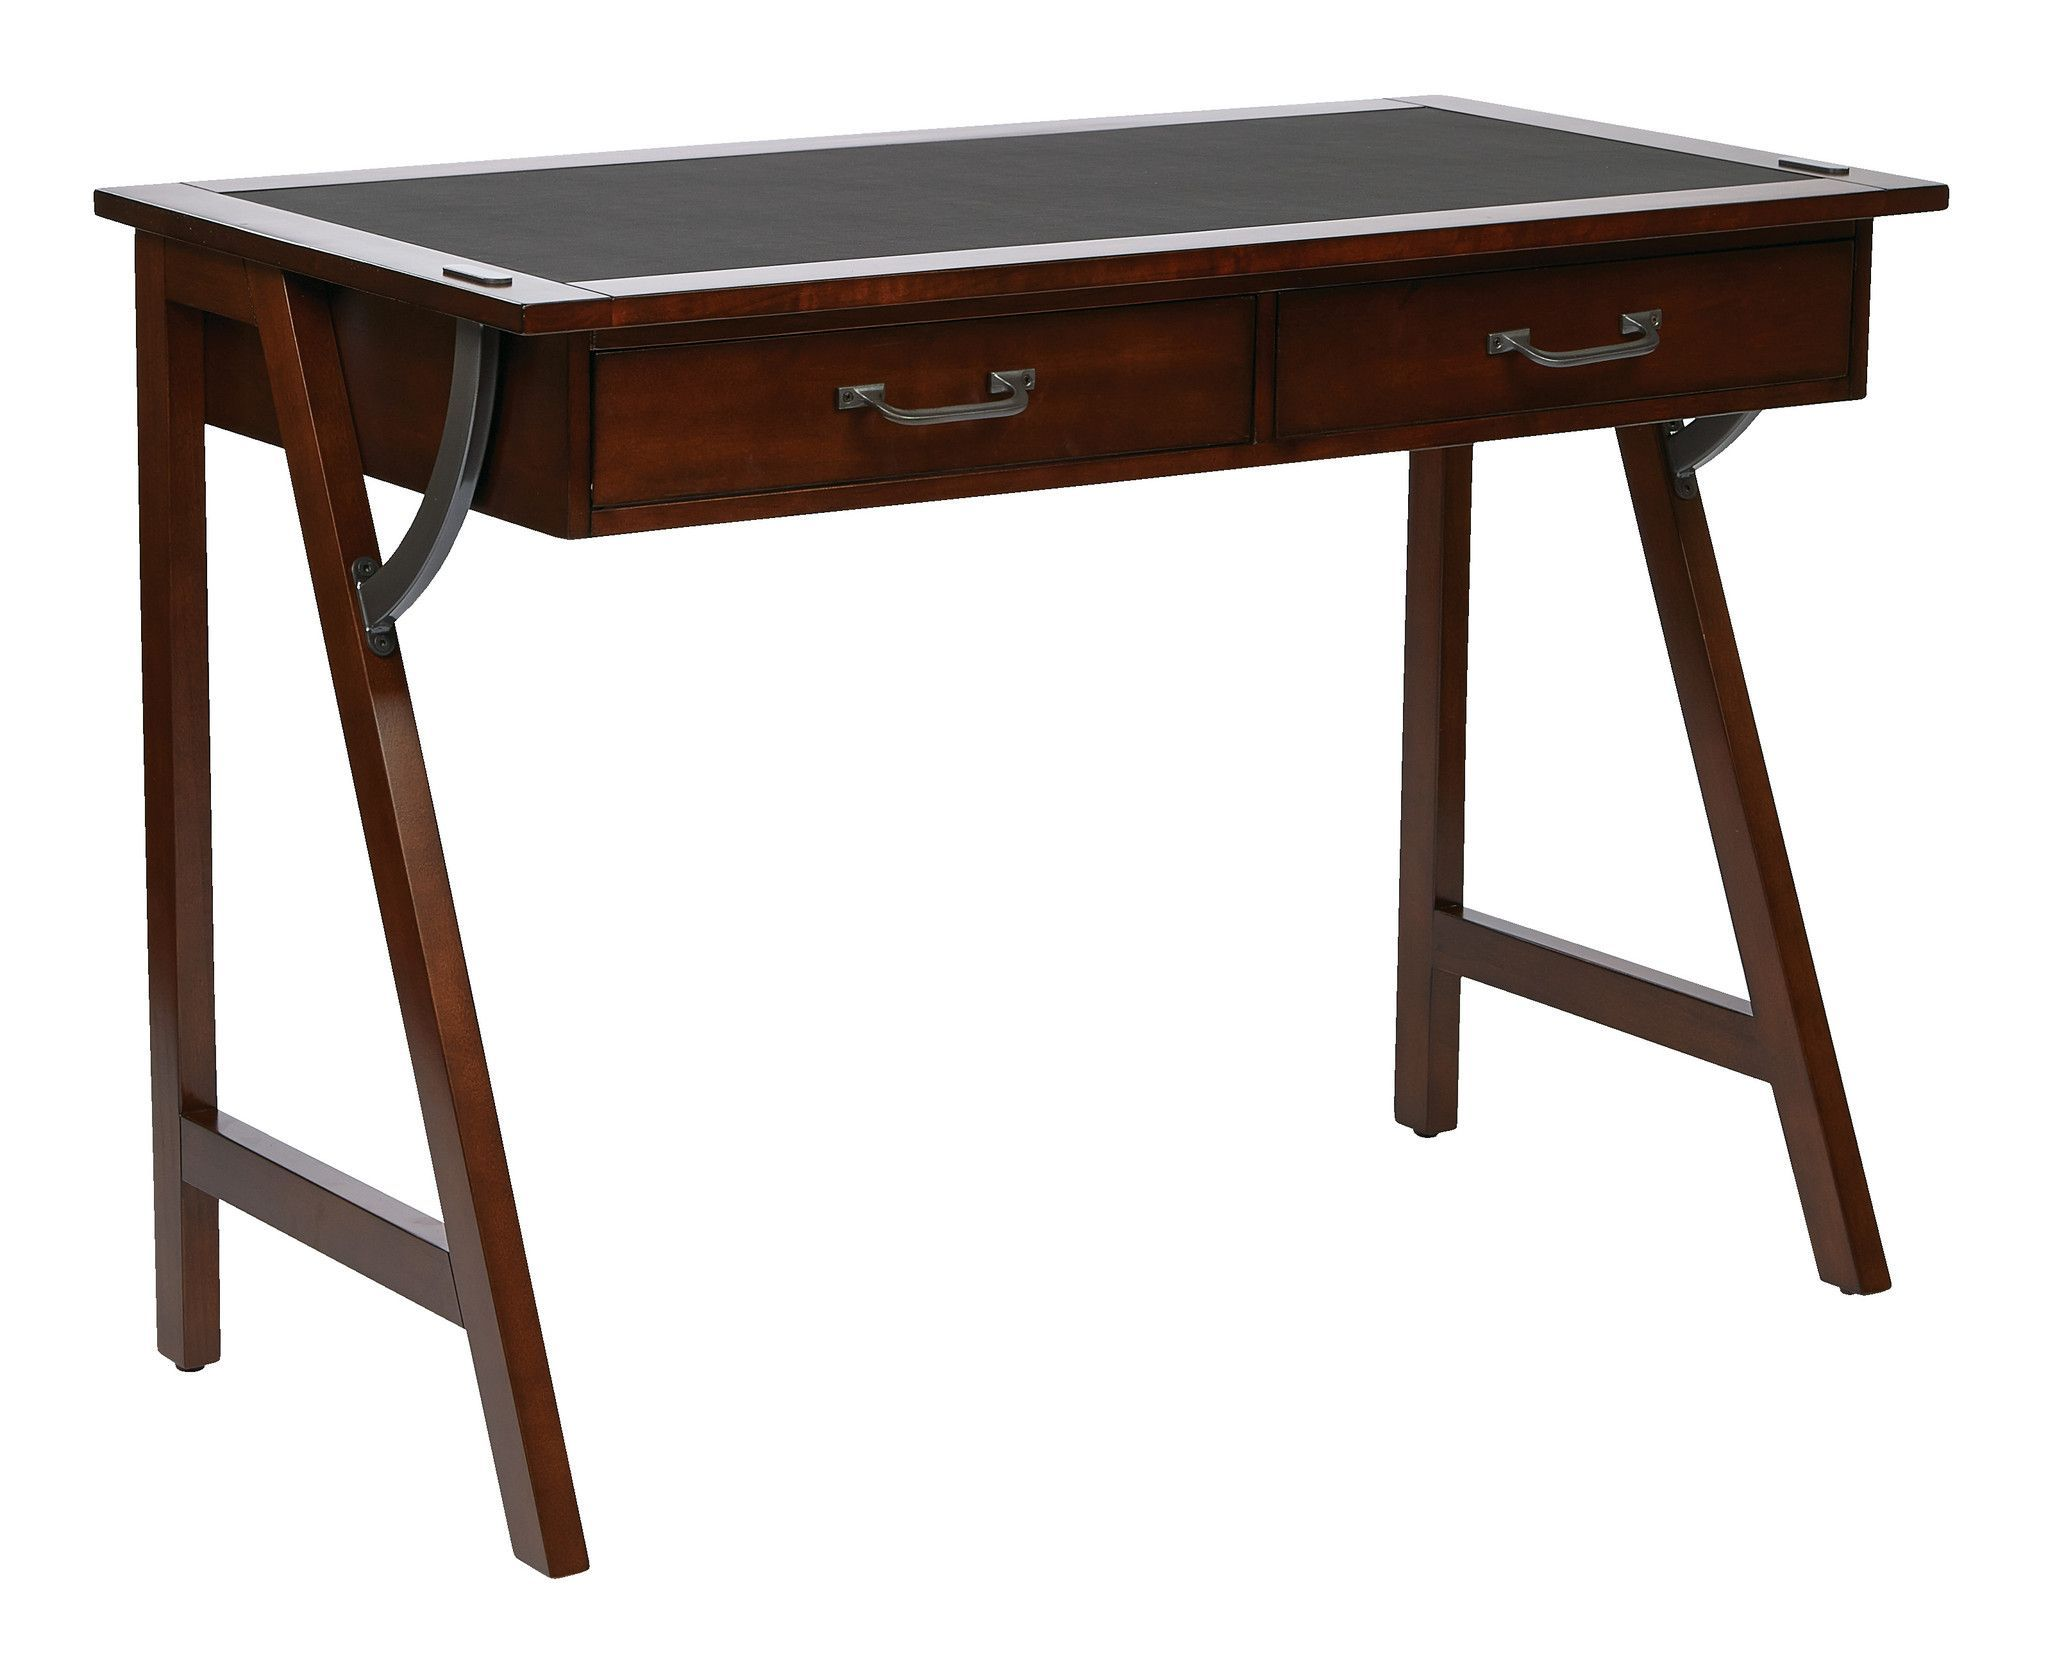 Osp Designs Dorset 44 Computer Desk In Cider Finish With Trestle